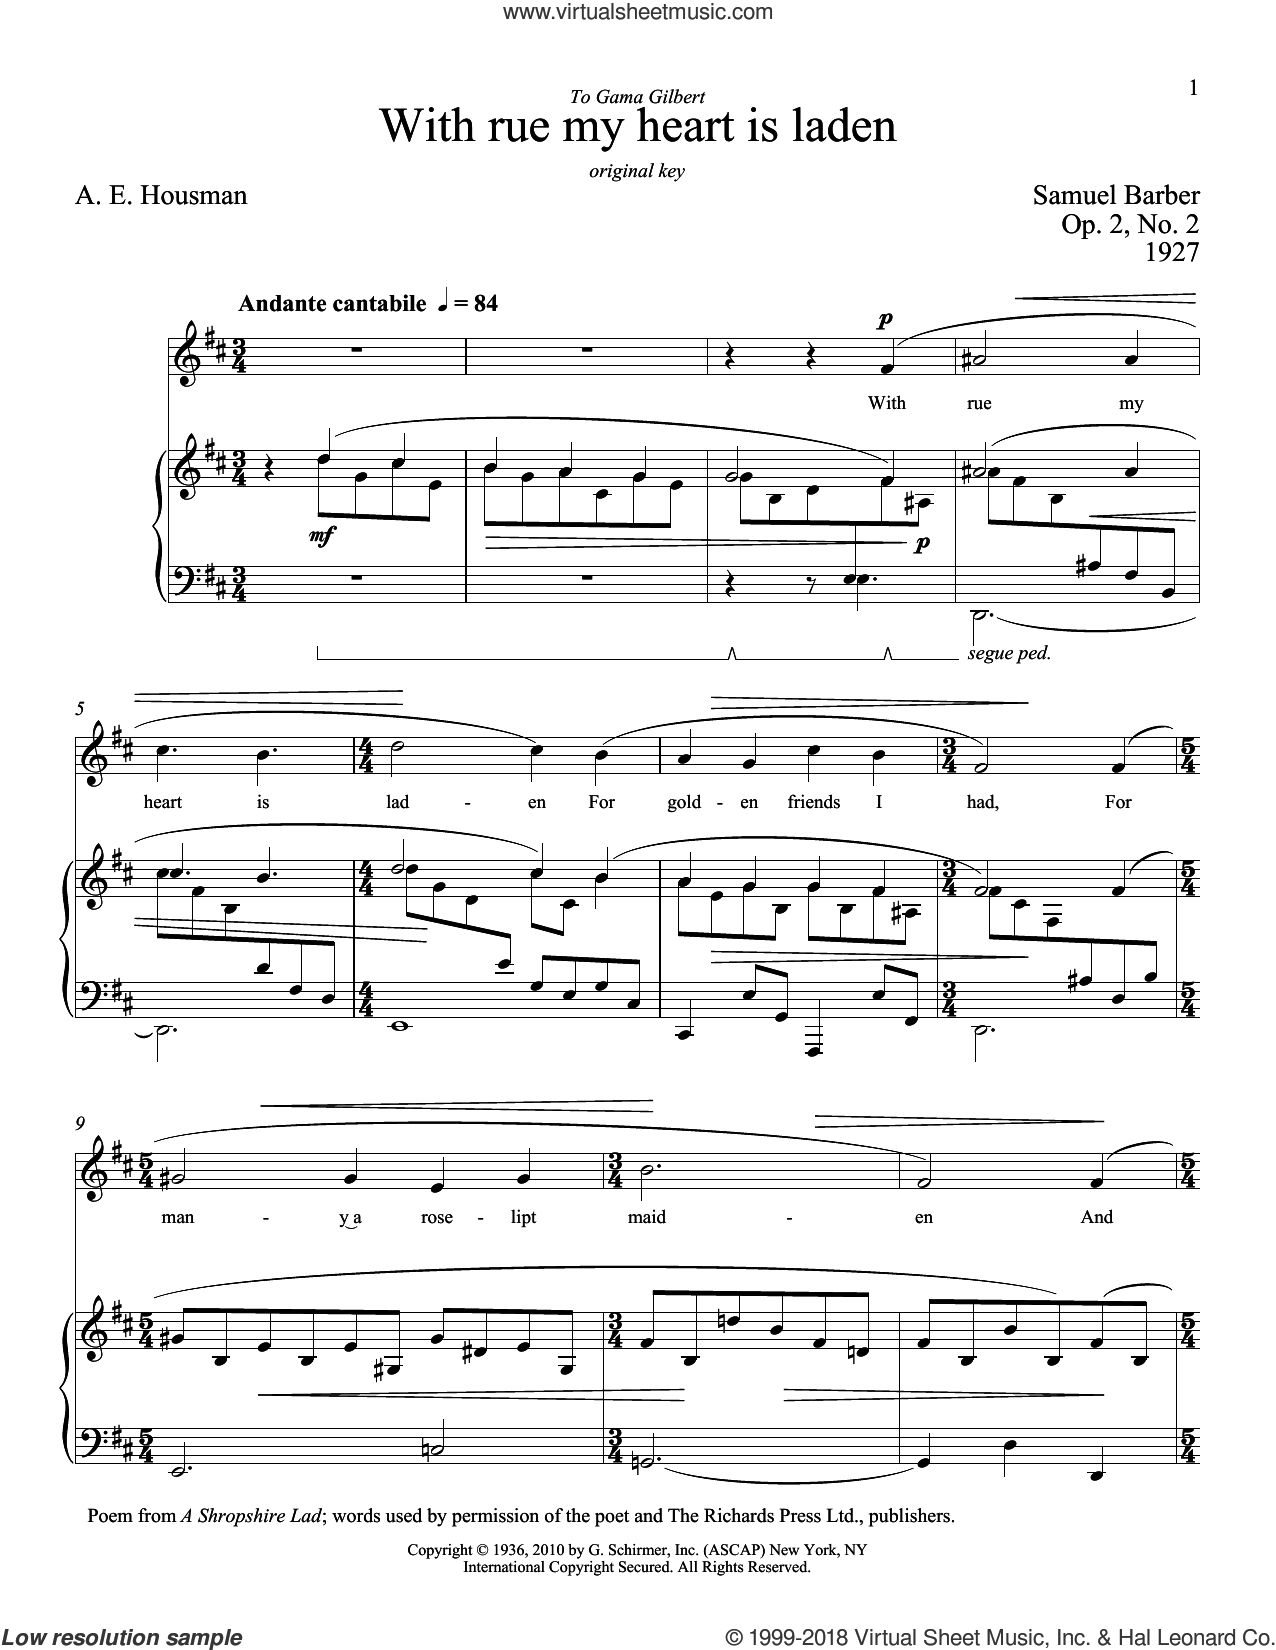 With Rue My Heart Is Laden sheet music for voice and piano (Low ) by A.E. Housman, Richard Walters and Samuel Barber. Score Image Preview.